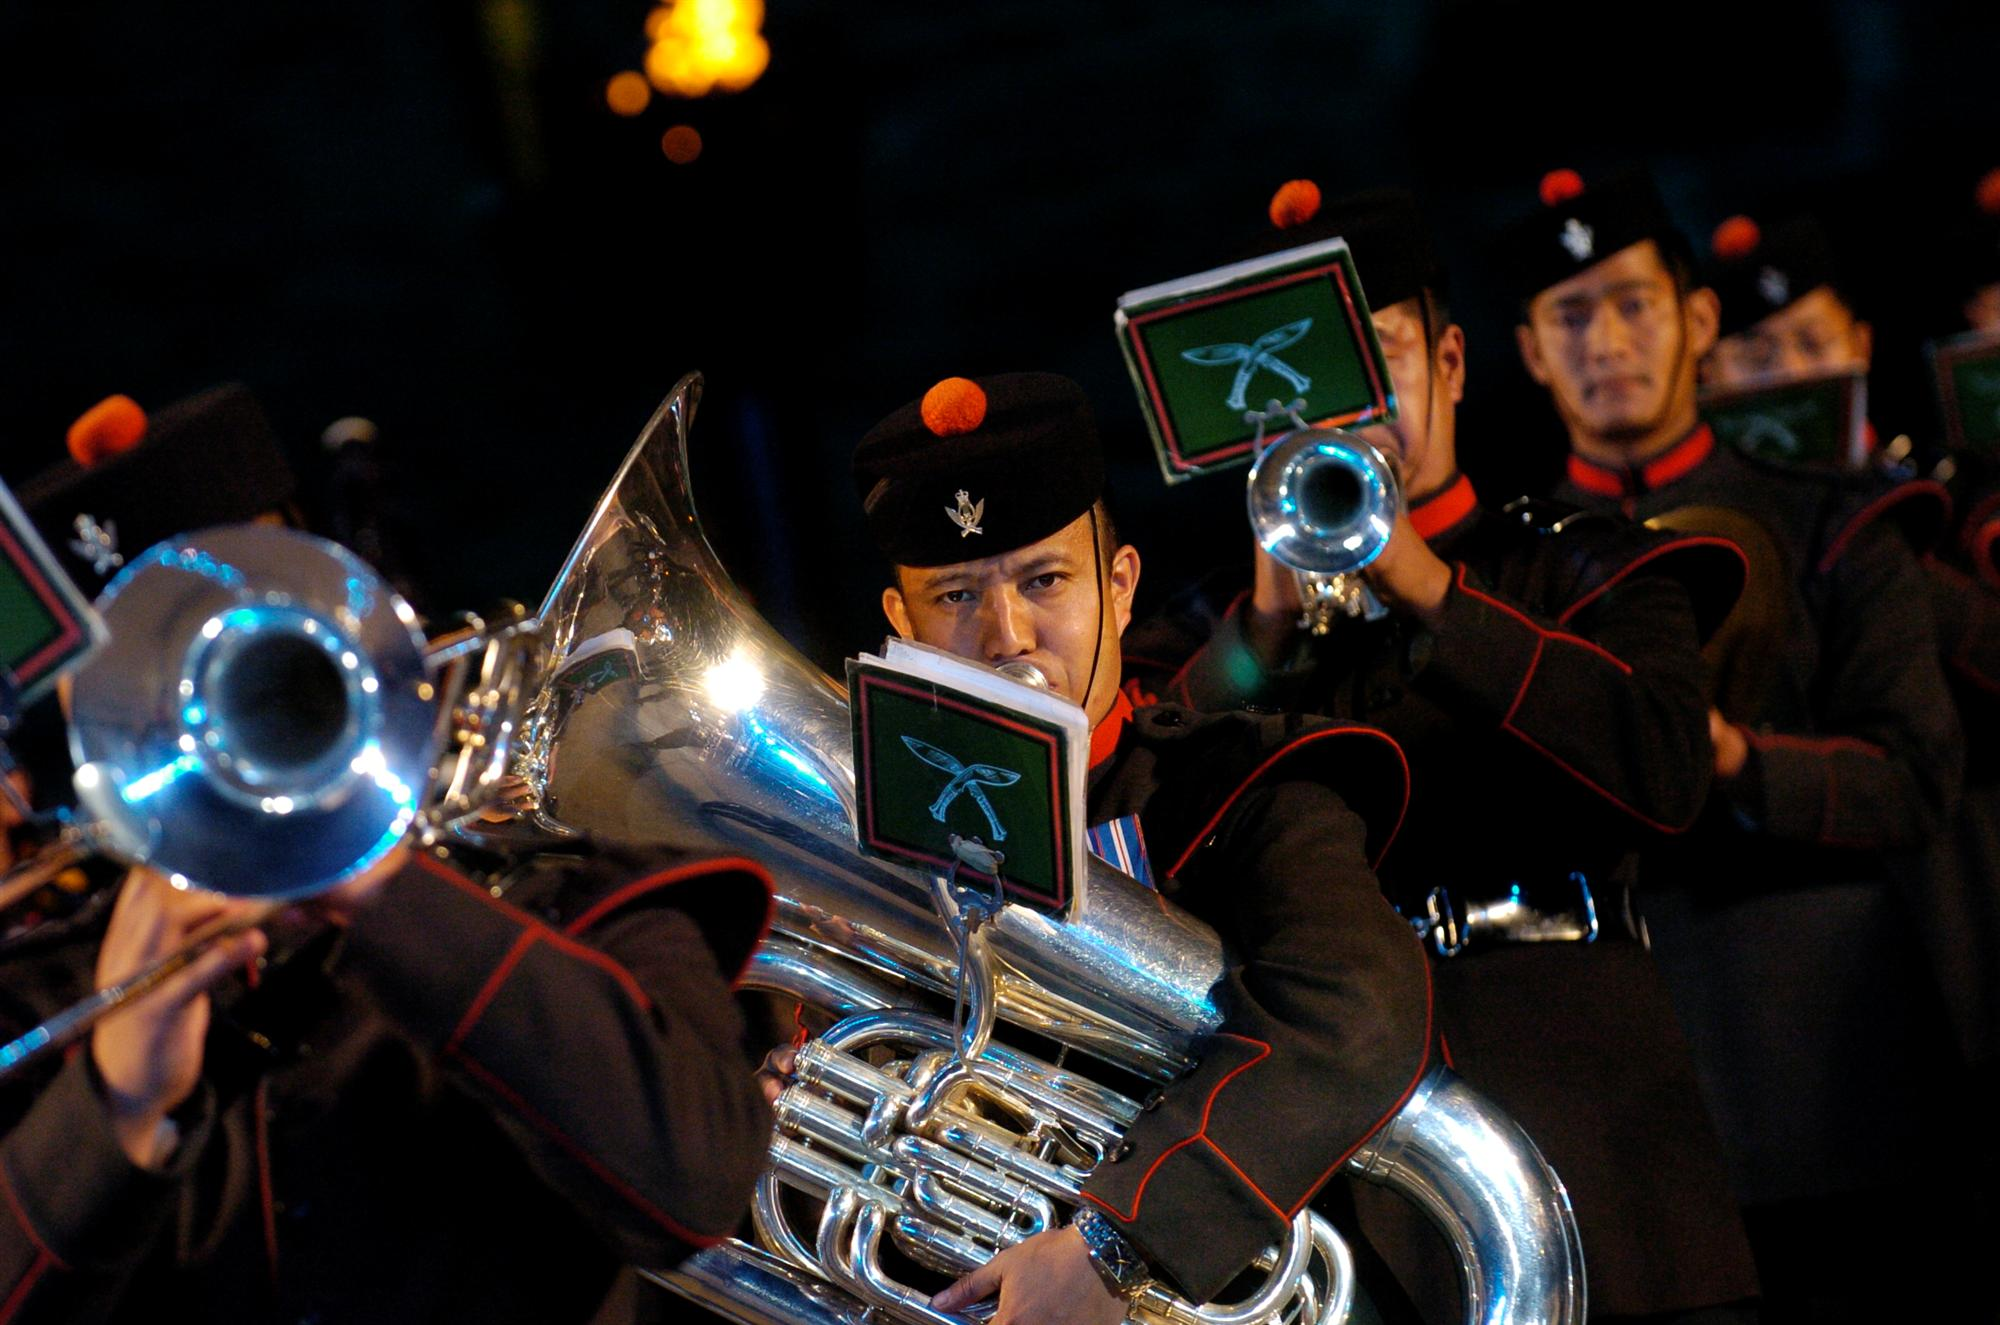 Band and Pipes and Drums of the Royal Gurkha Regiment. Photos Courtesy: The Royal Edinburgh Military Tattoo official website